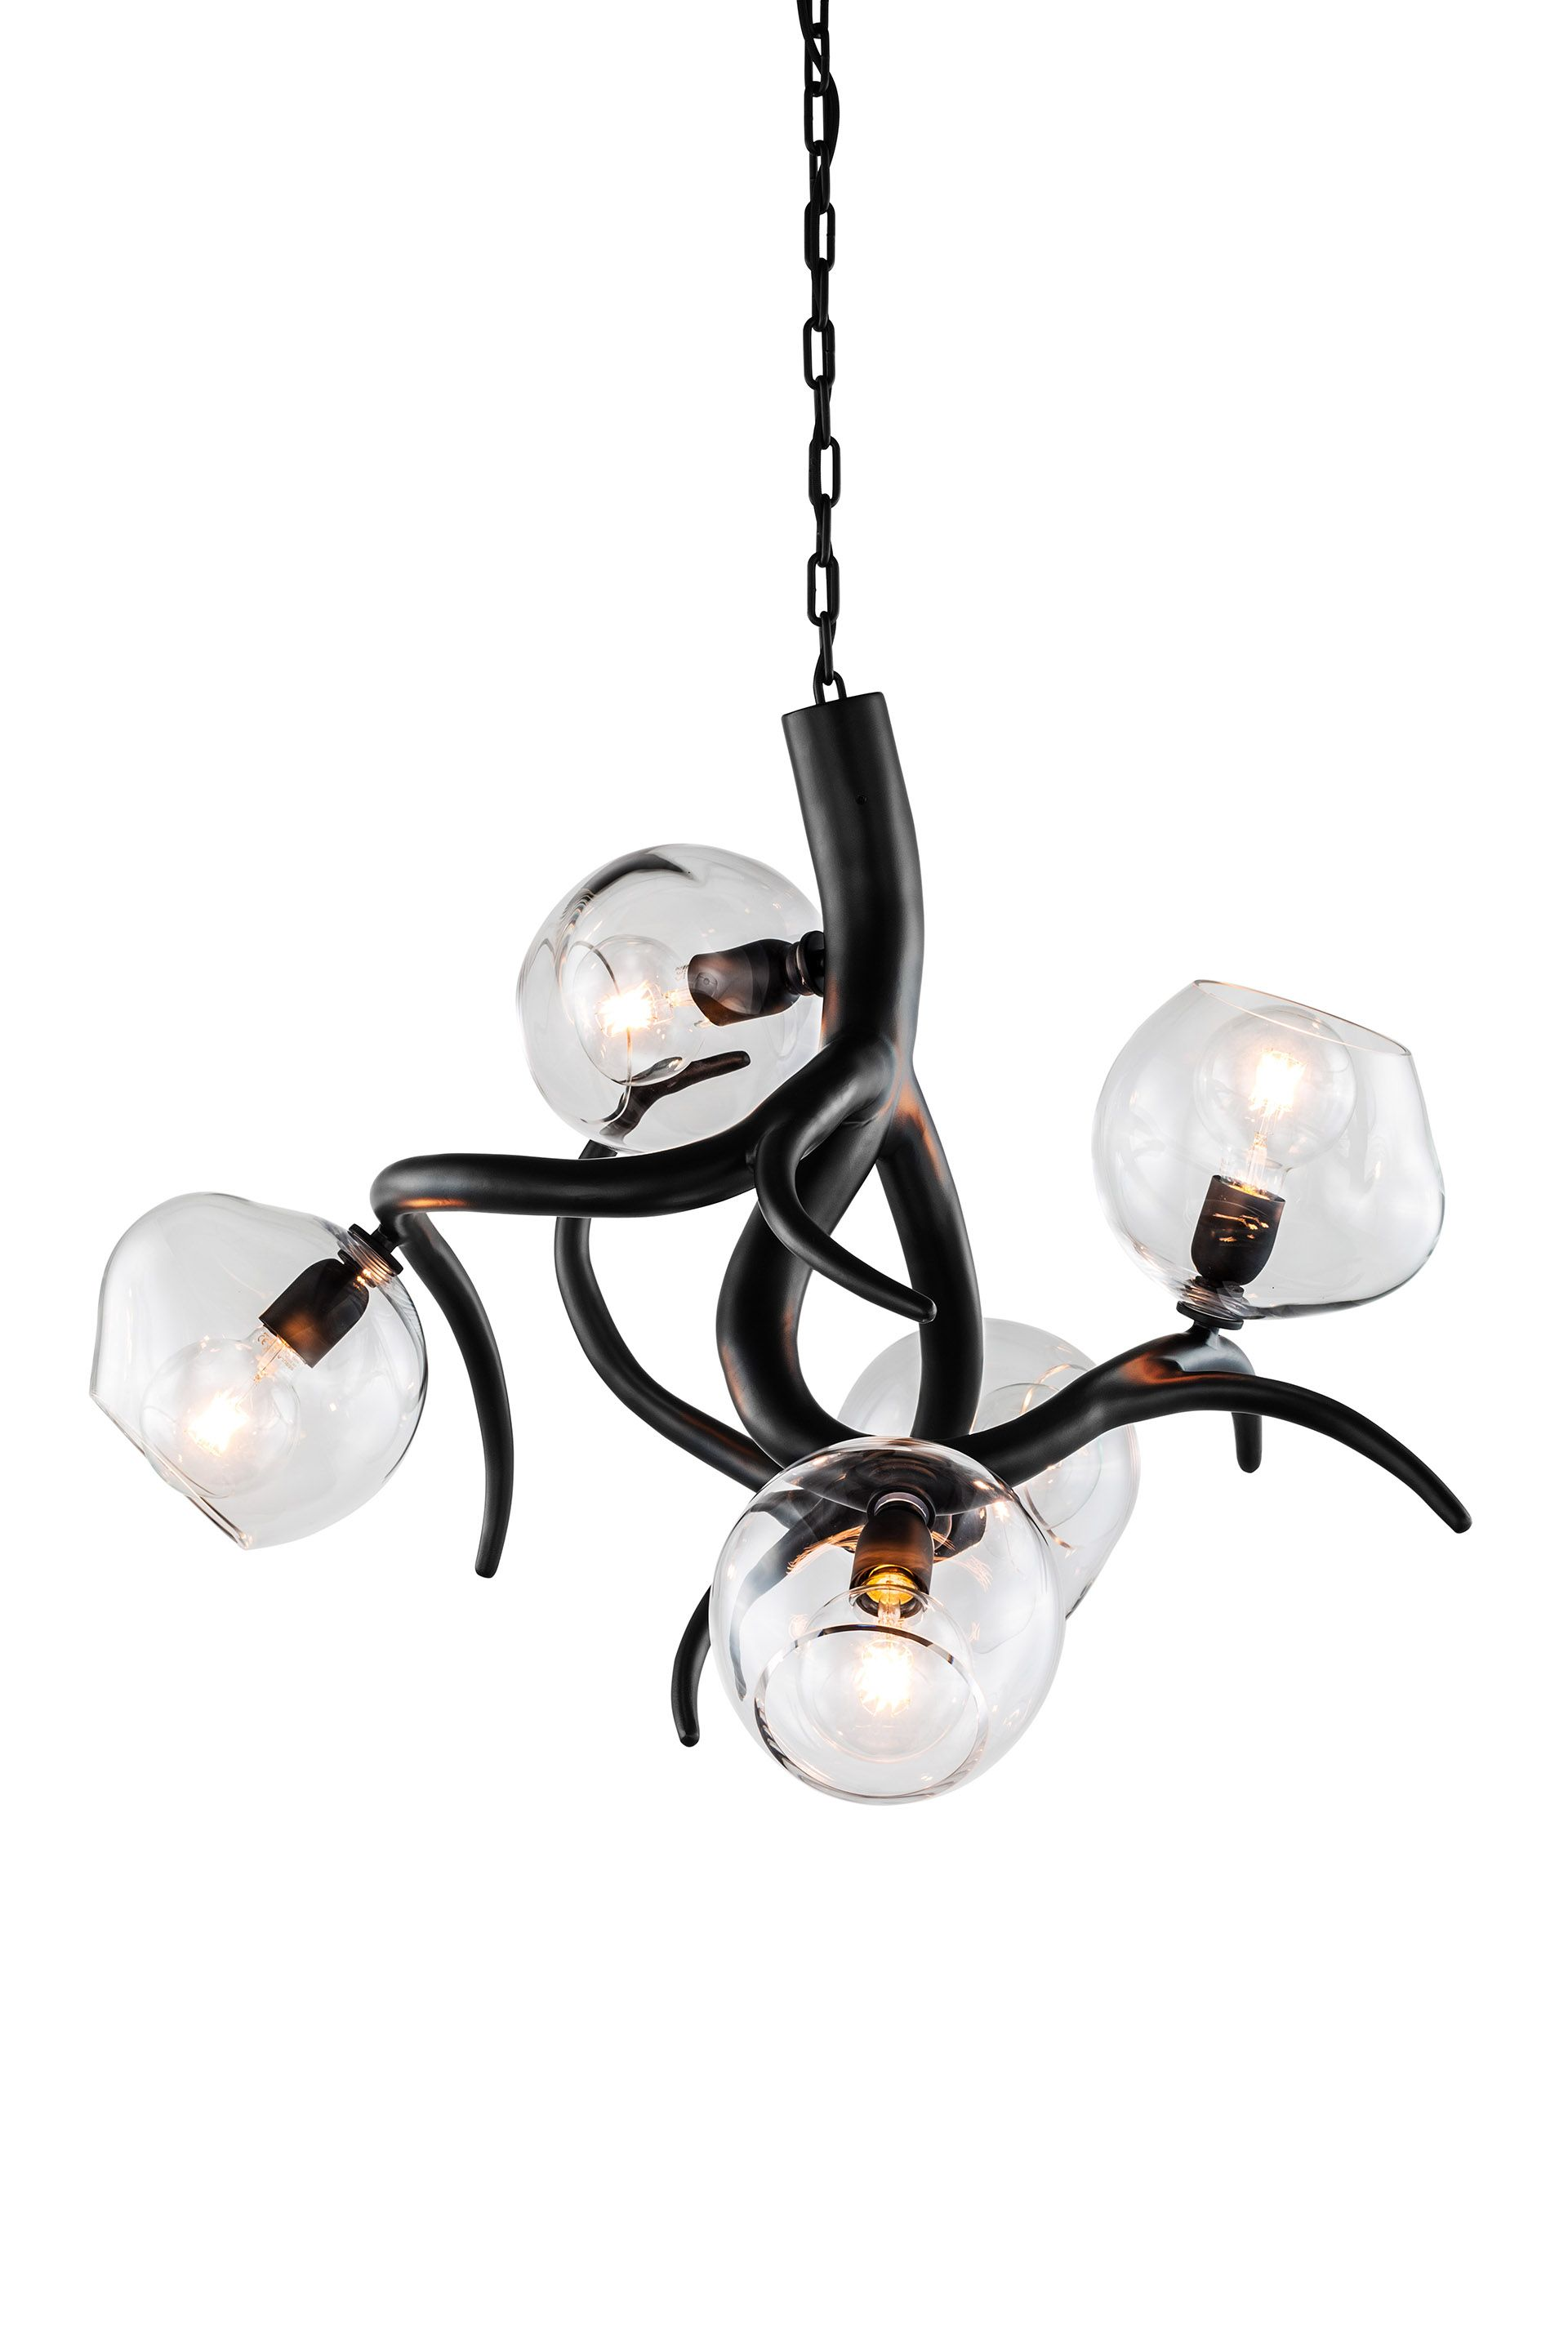 Part Of The New Ersa Collection Modern Pendant Lighting By Brand Van - Pendant light collections